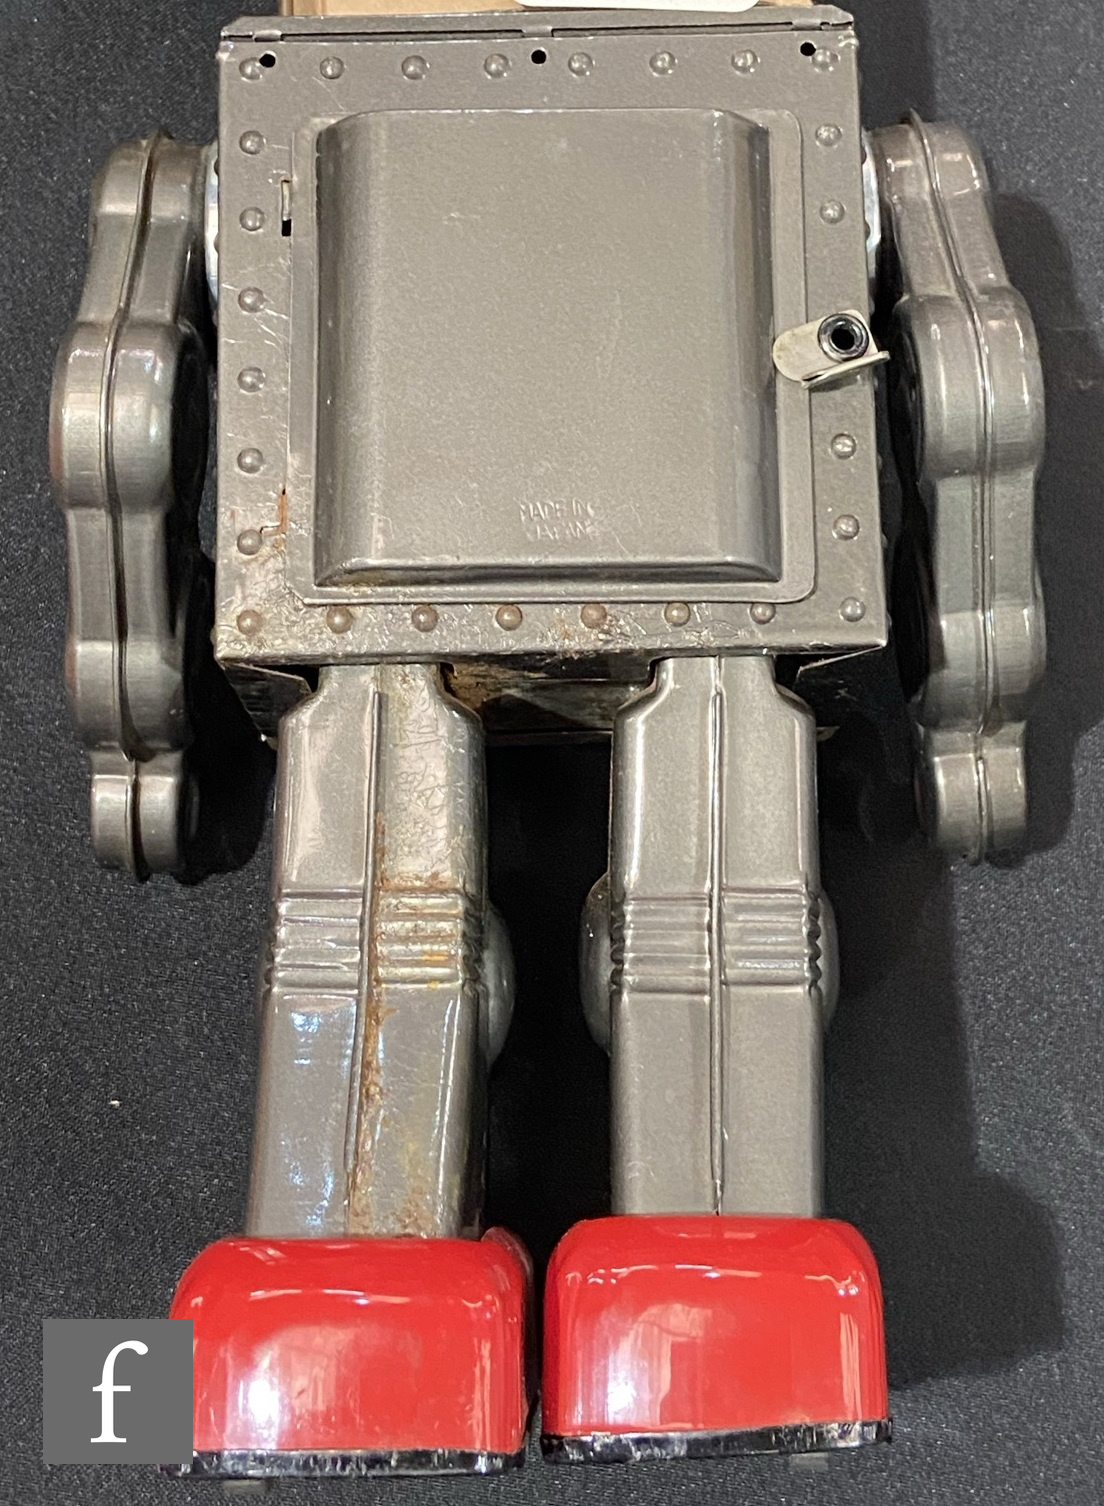 A Japanese Horikawa Machine Robot, tinplate and plastic robot in picture box with inner packing - Image 5 of 5